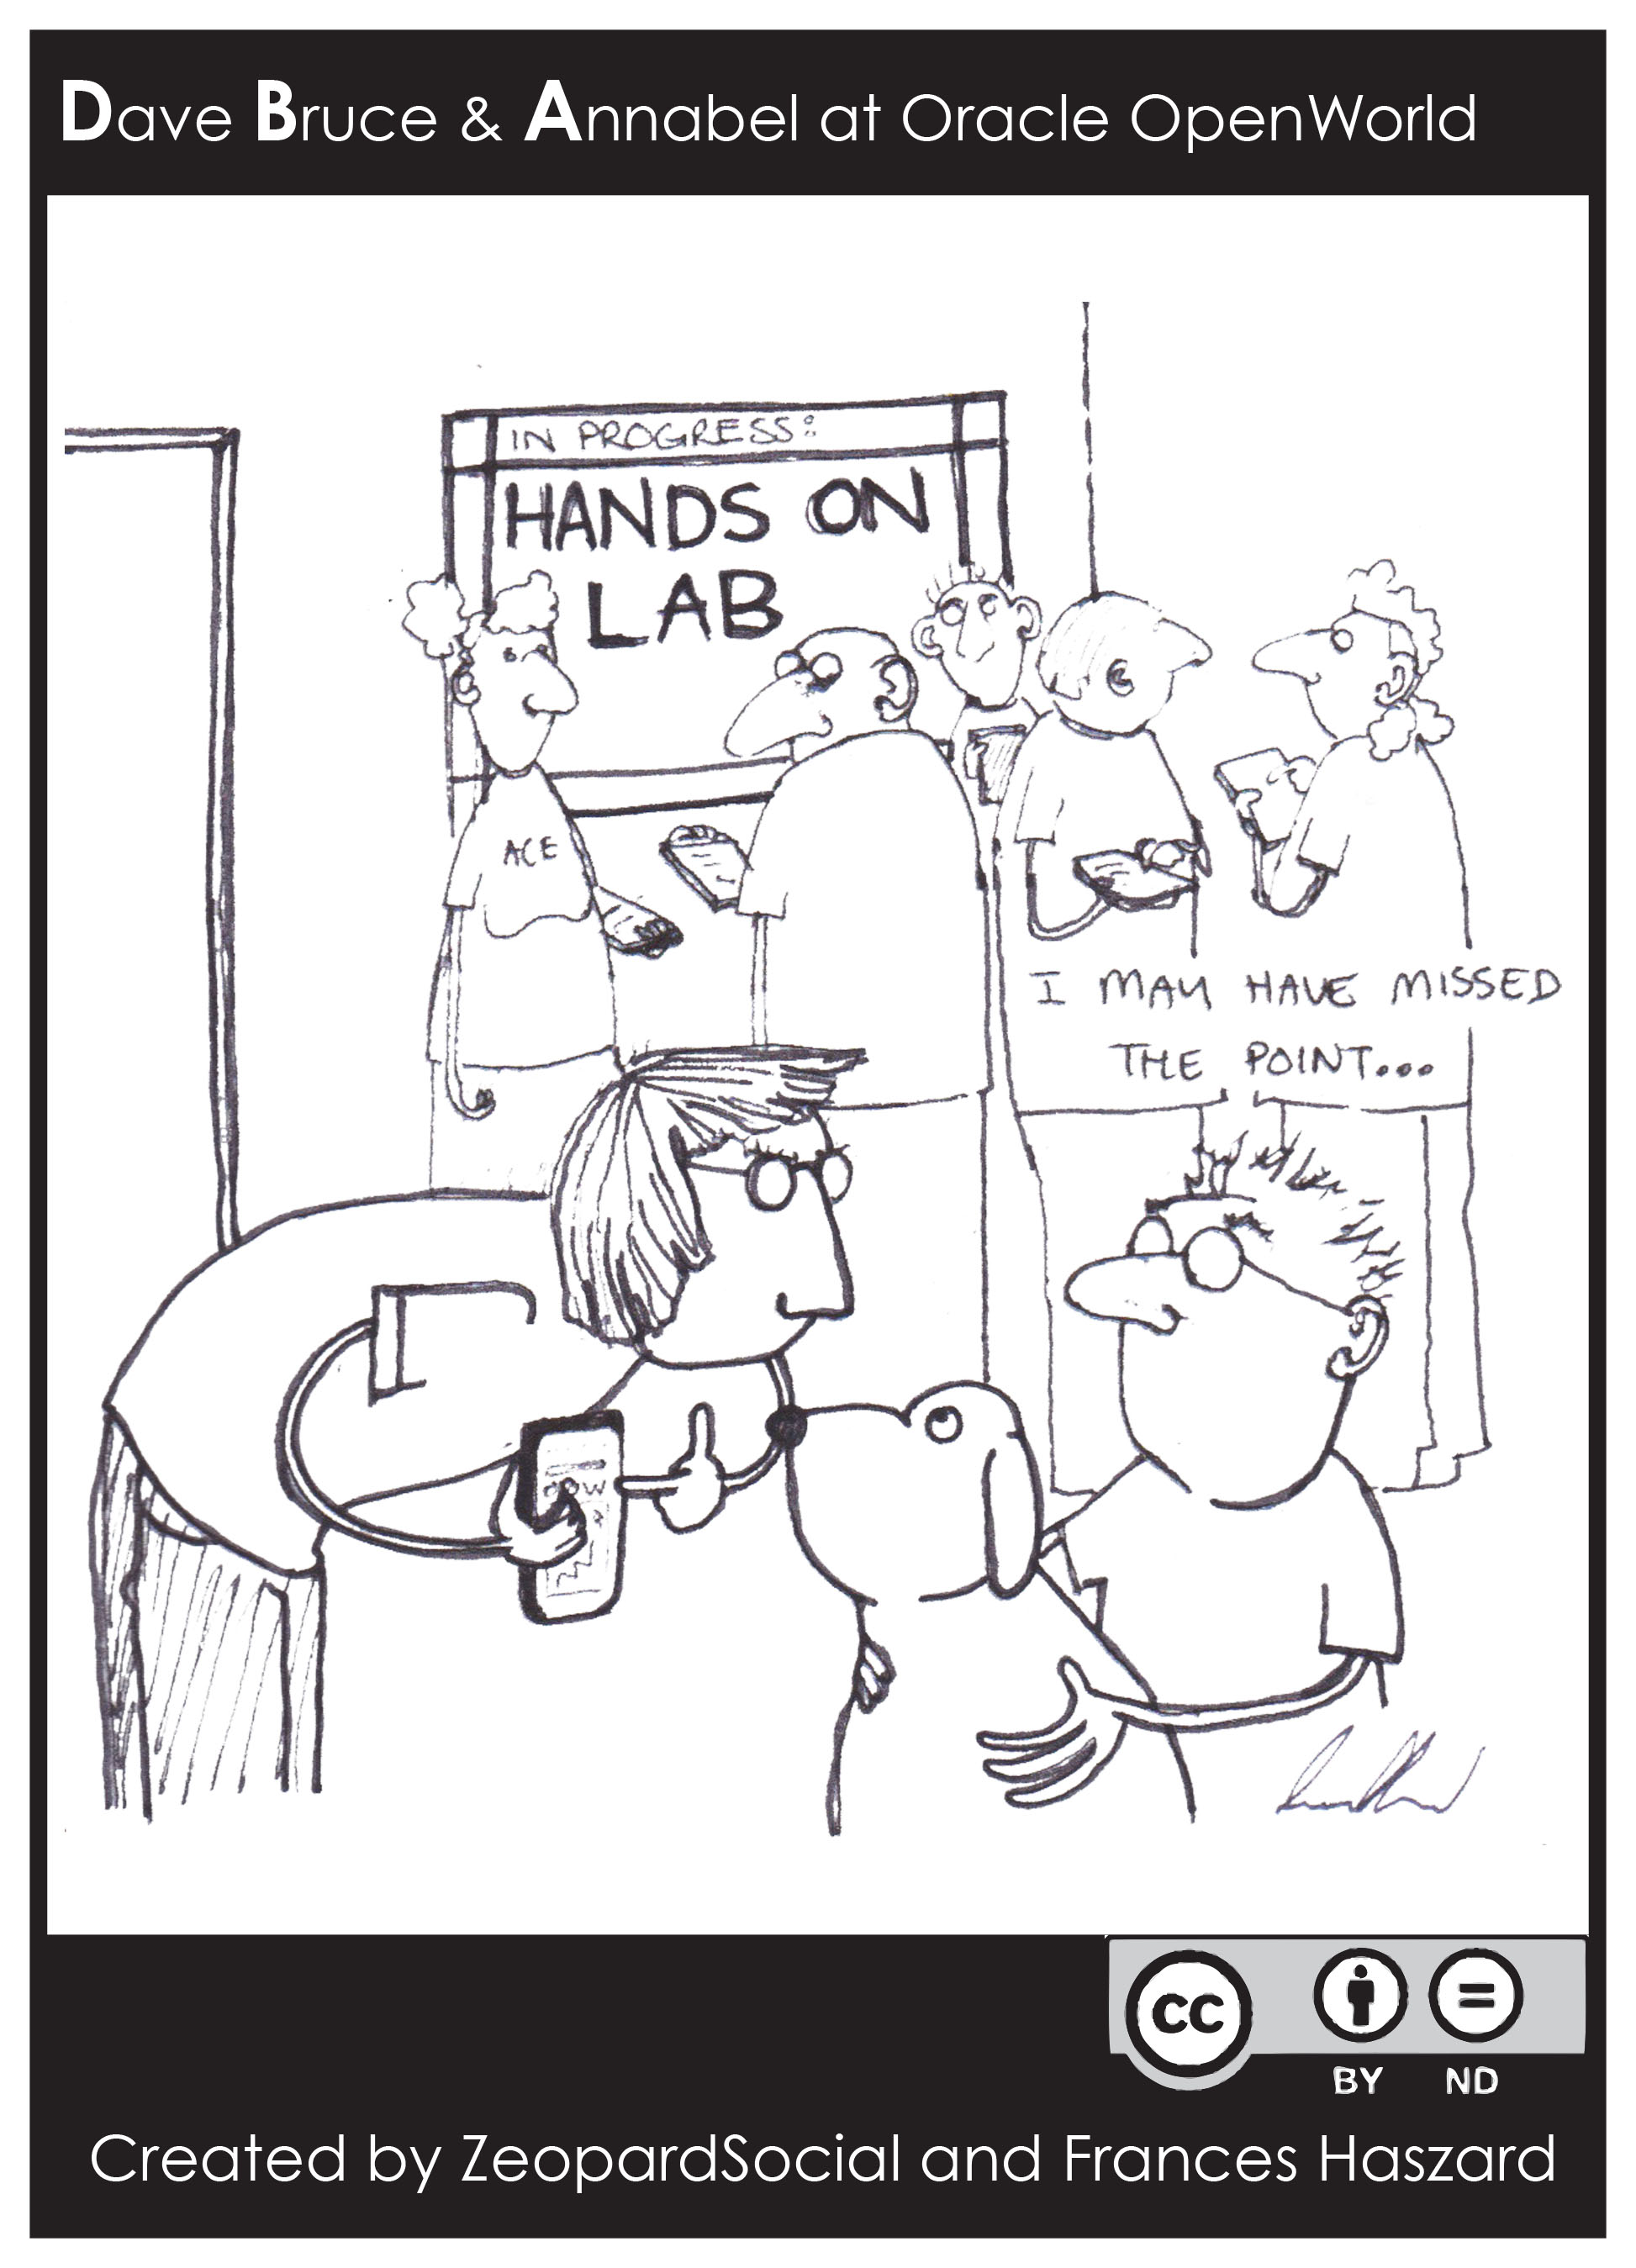 Dave and Bruce attend a hands on lab at Oracle Open World